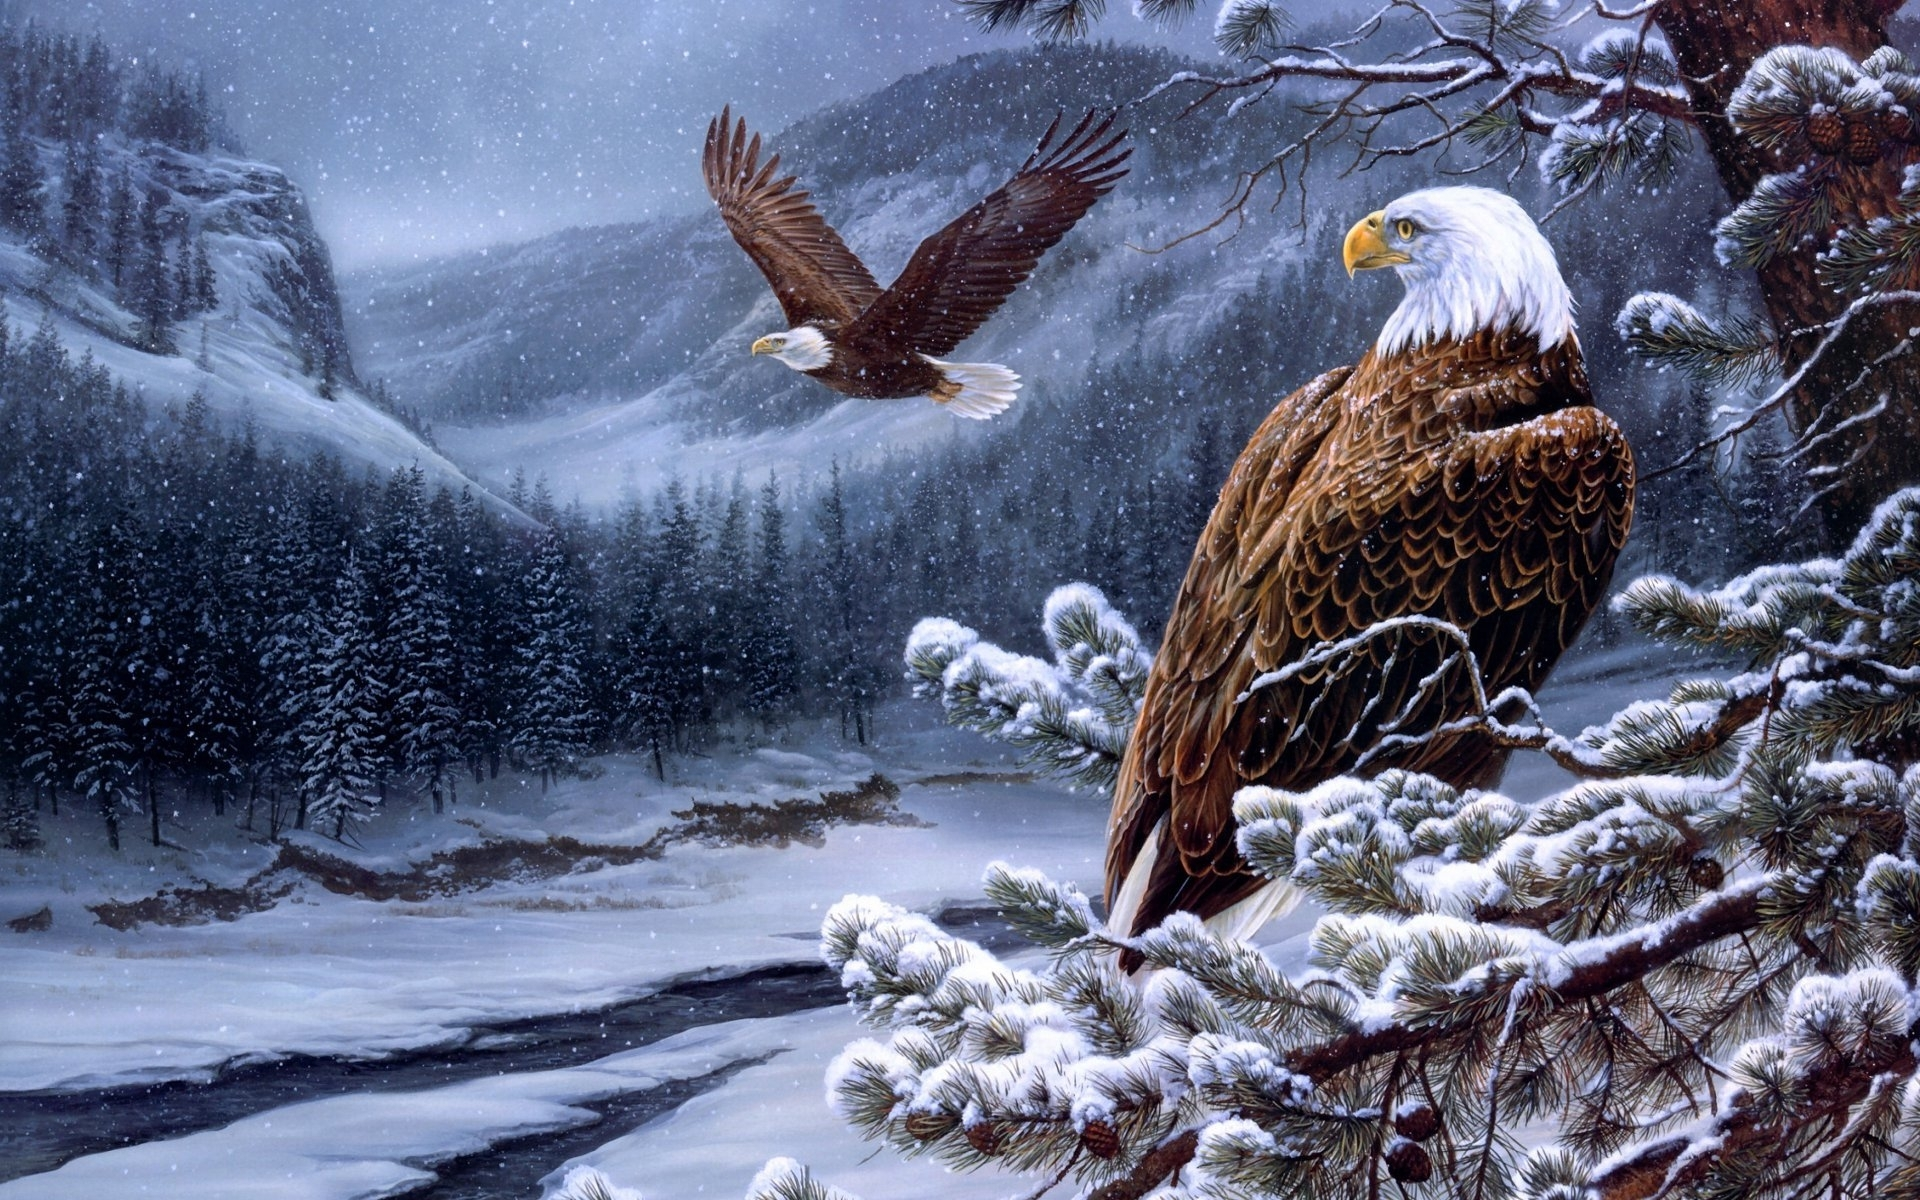 23695 download wallpaper Birds, Snow, Pictures, Eagles screensavers and pictures for free